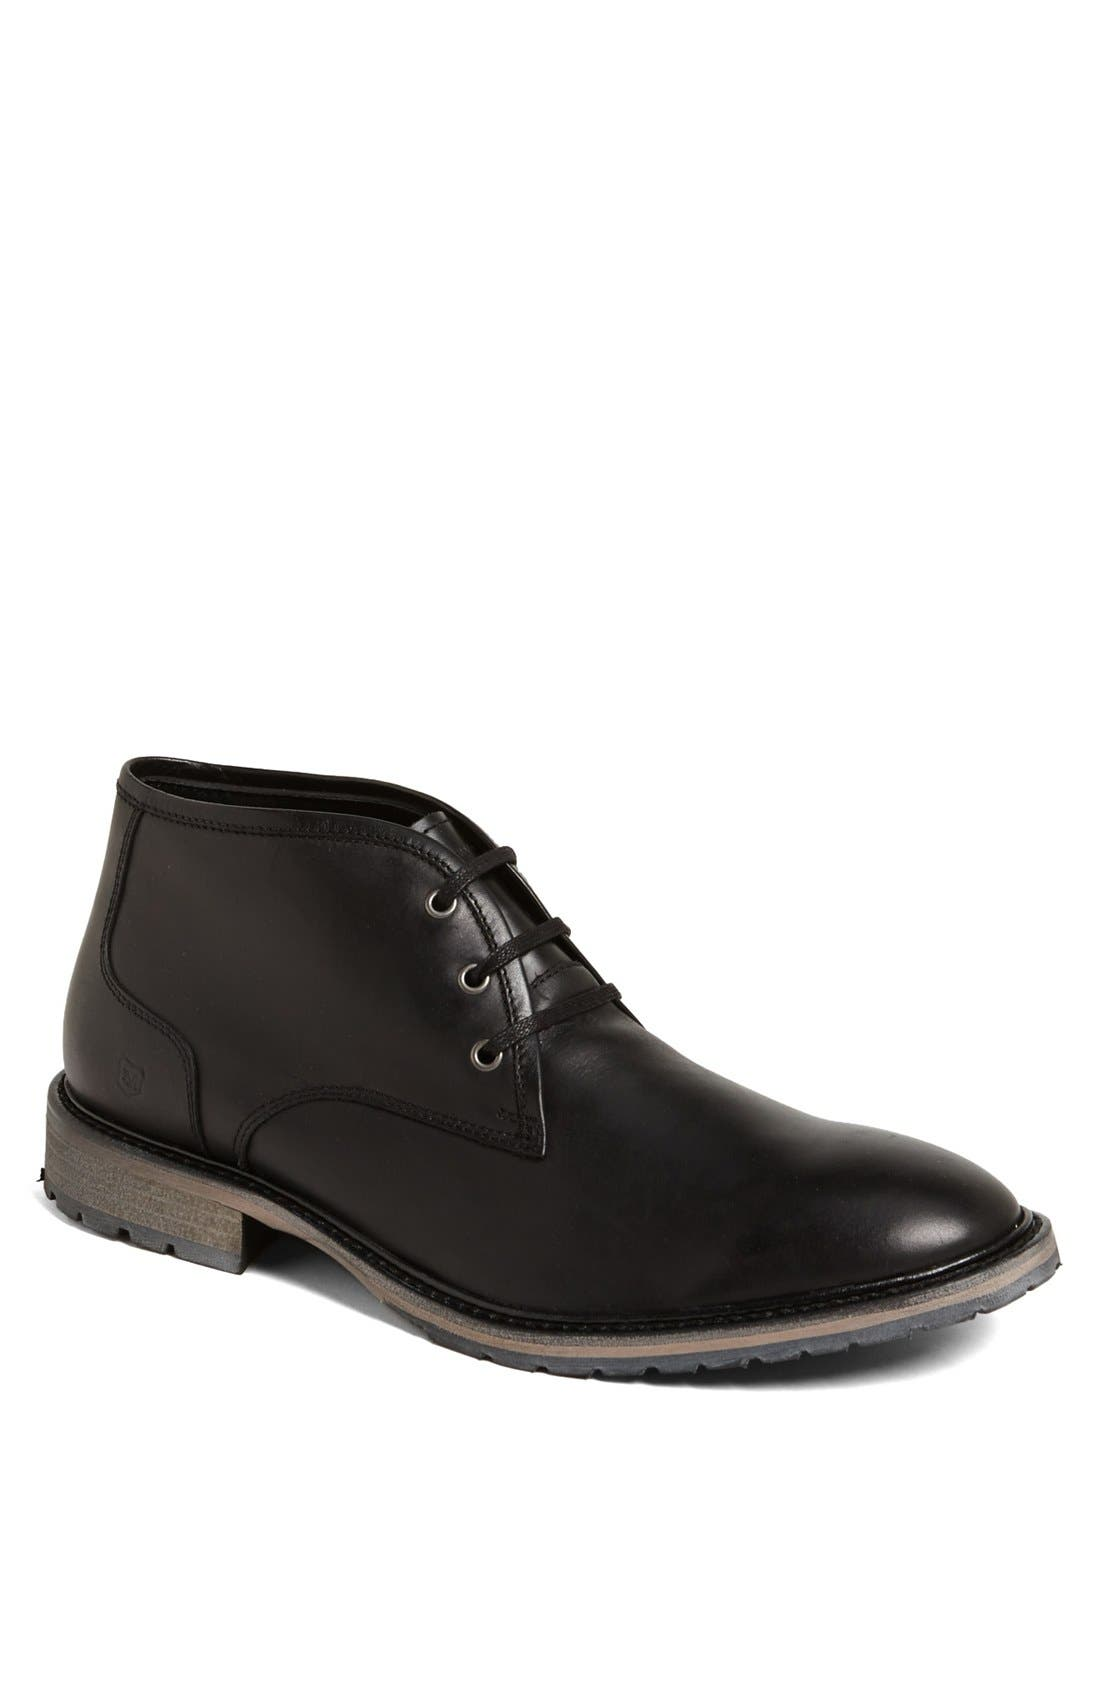 Alternate Image 1 Selected - Andrew Marc 'Woodside' Chukka Boot (Men)